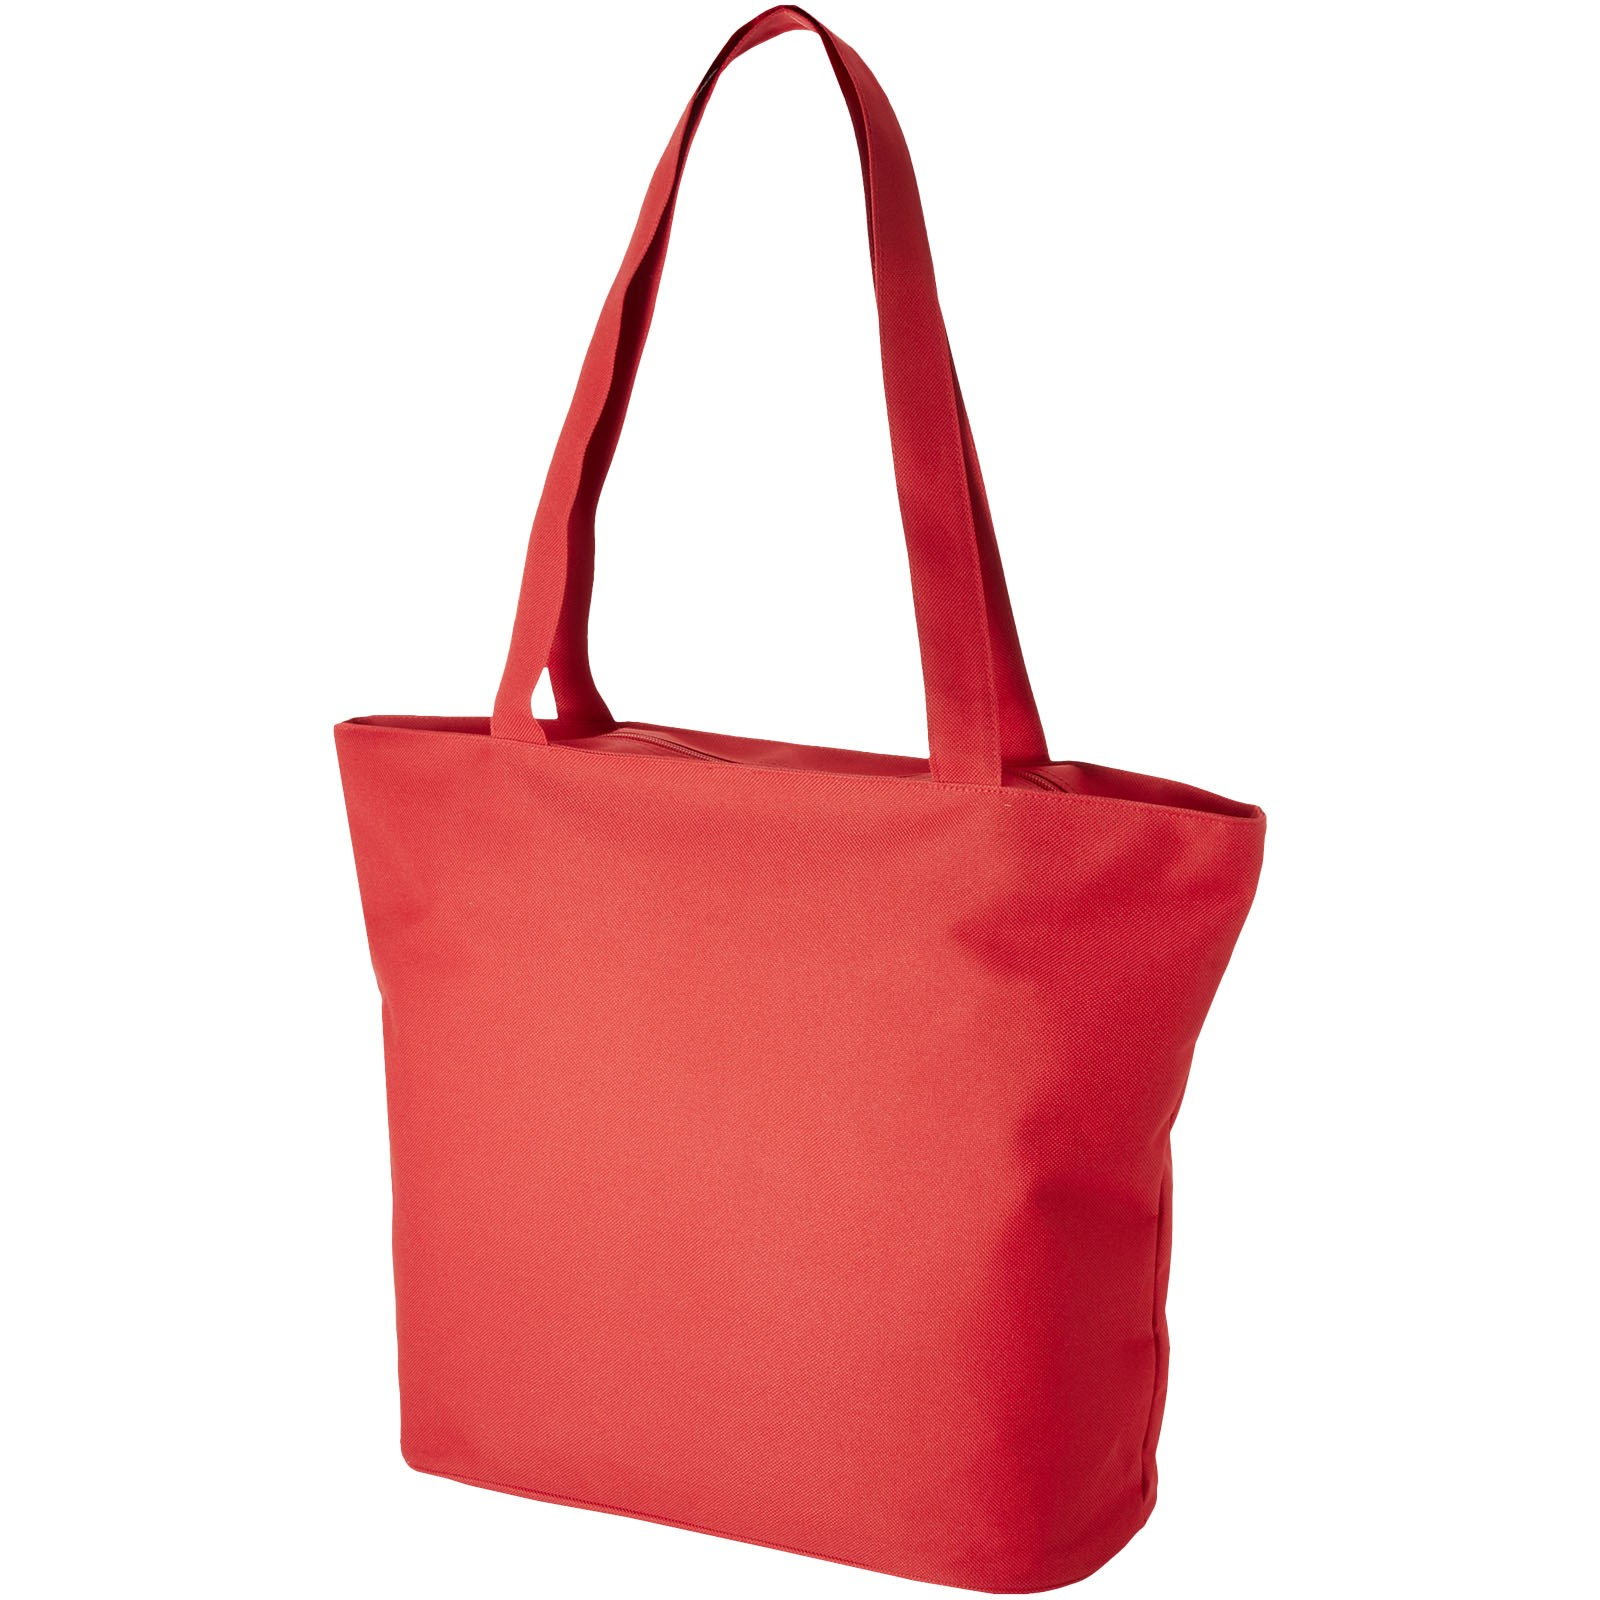 Panama zippered tote bag - Red